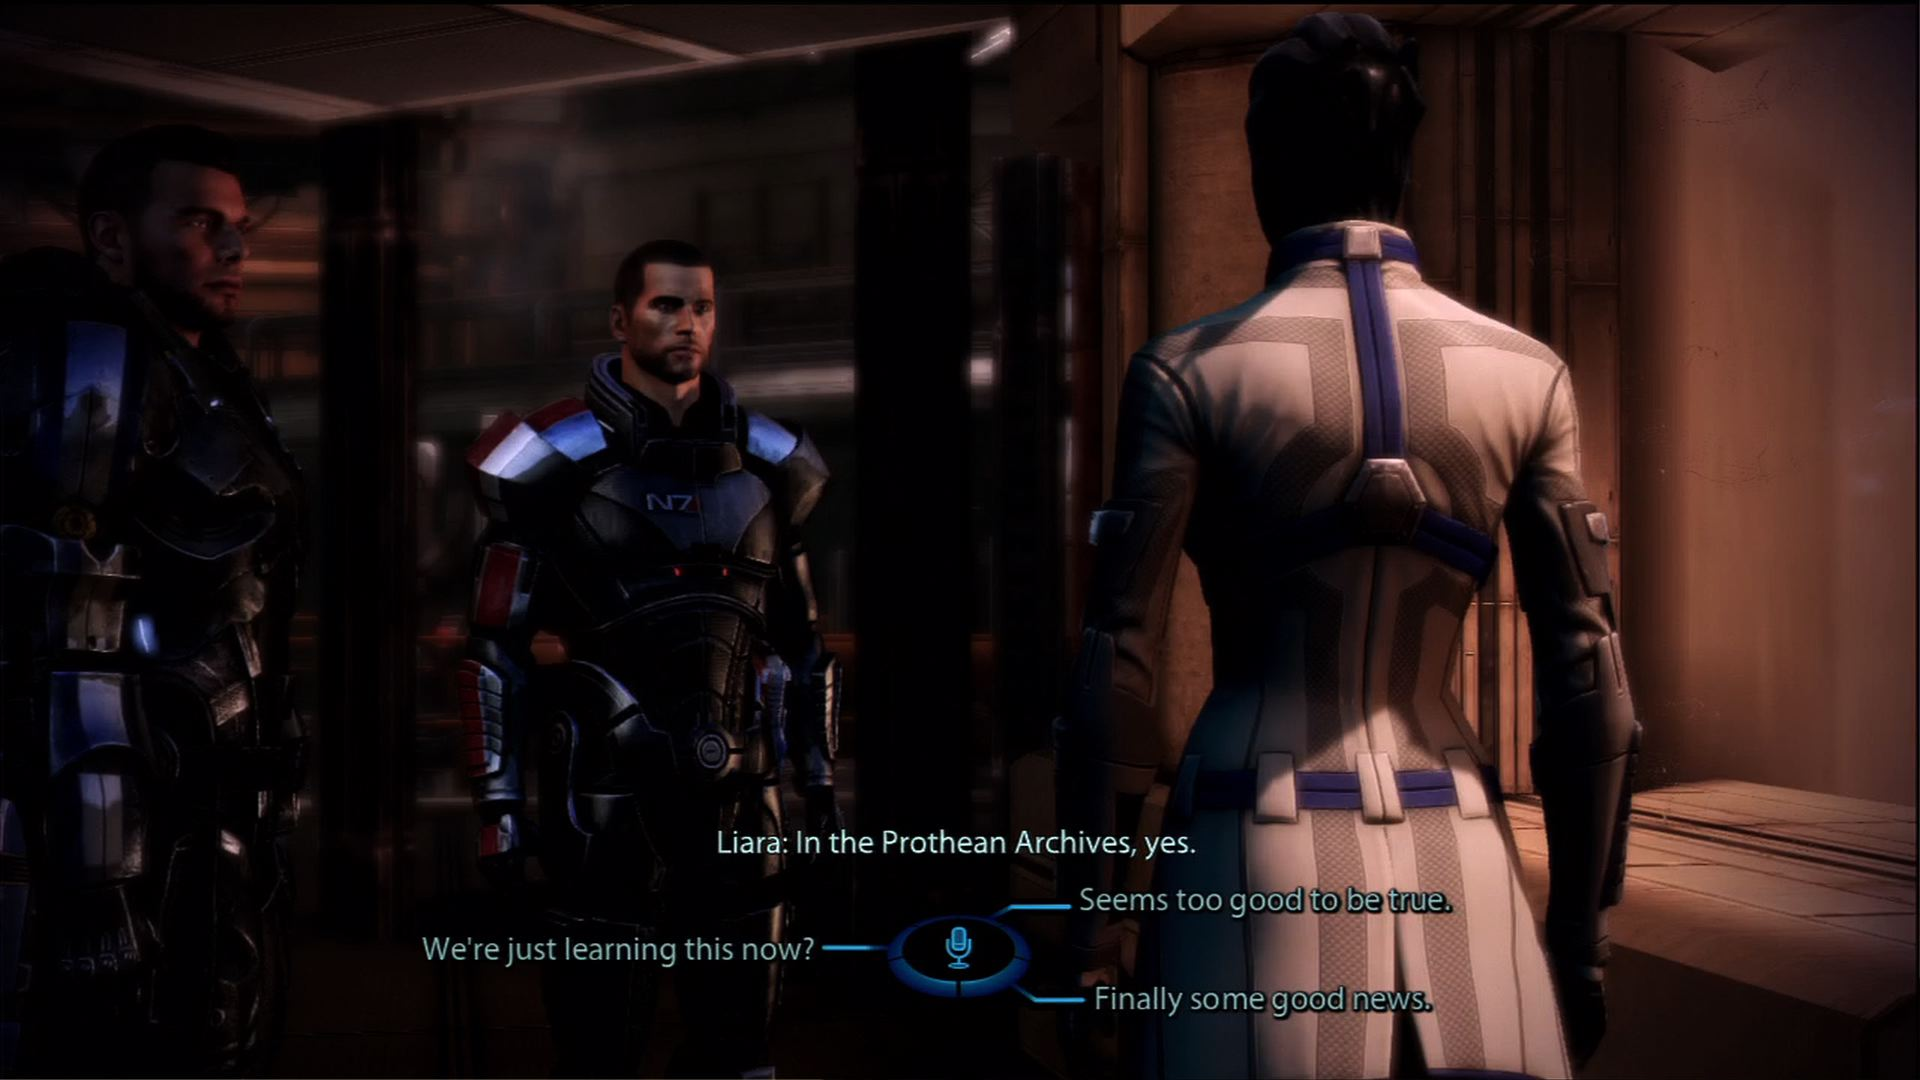 'Ashley, Concussive Shot!' And Other Voice Commands In Mass Effect 3